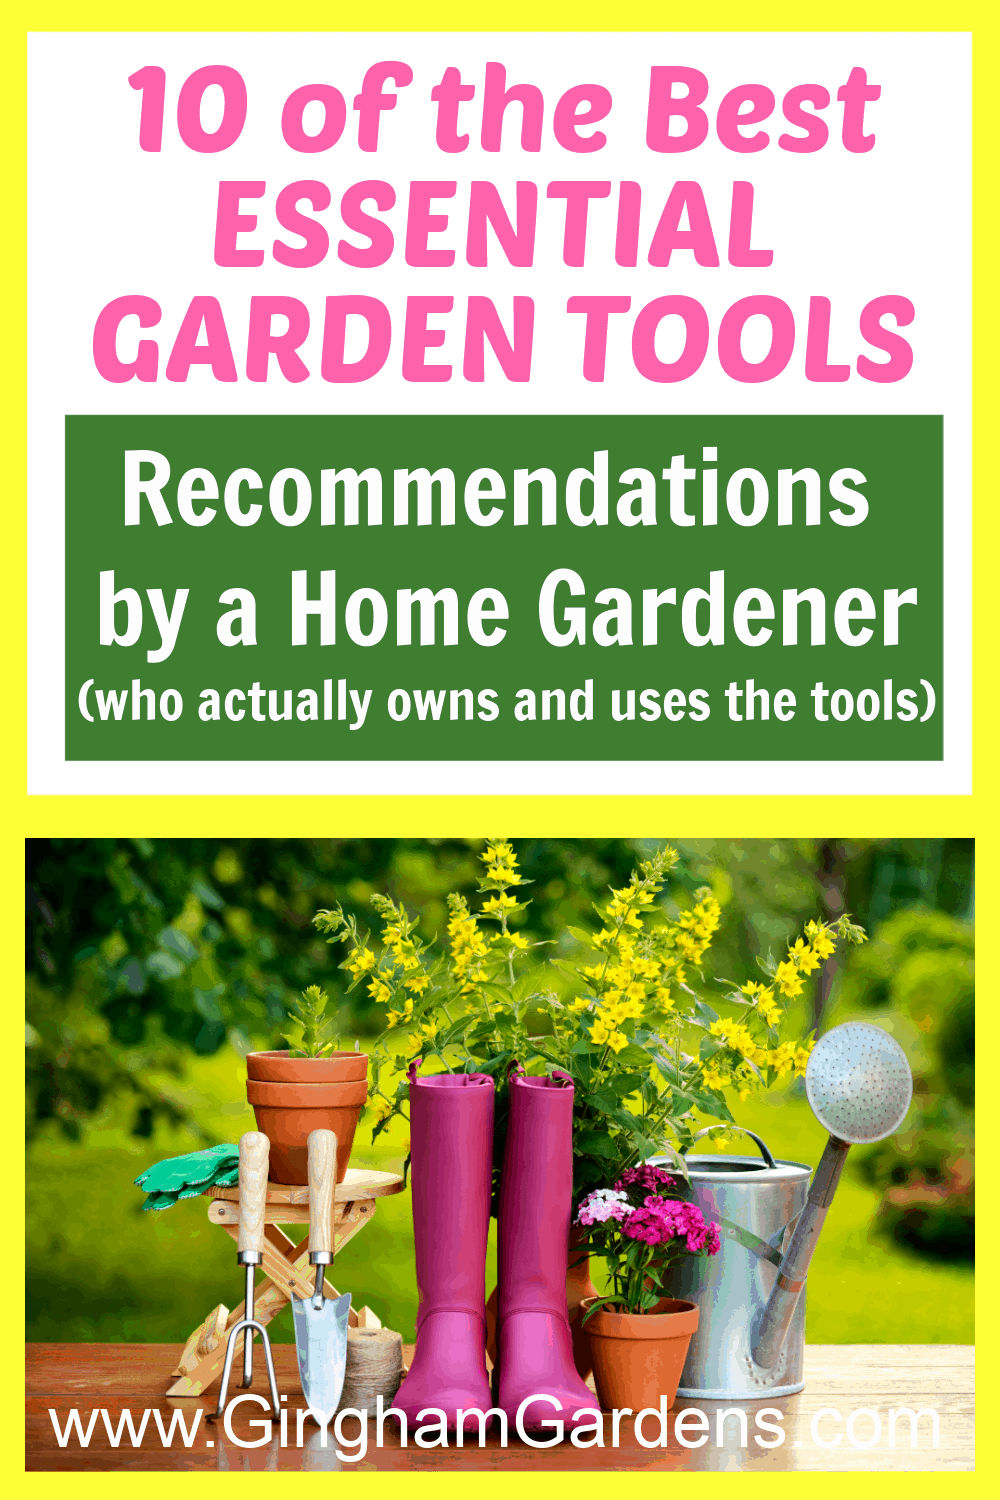 Image of Gardening Tools with Text Overlay - 1- of the Best Essential Gardening Tools